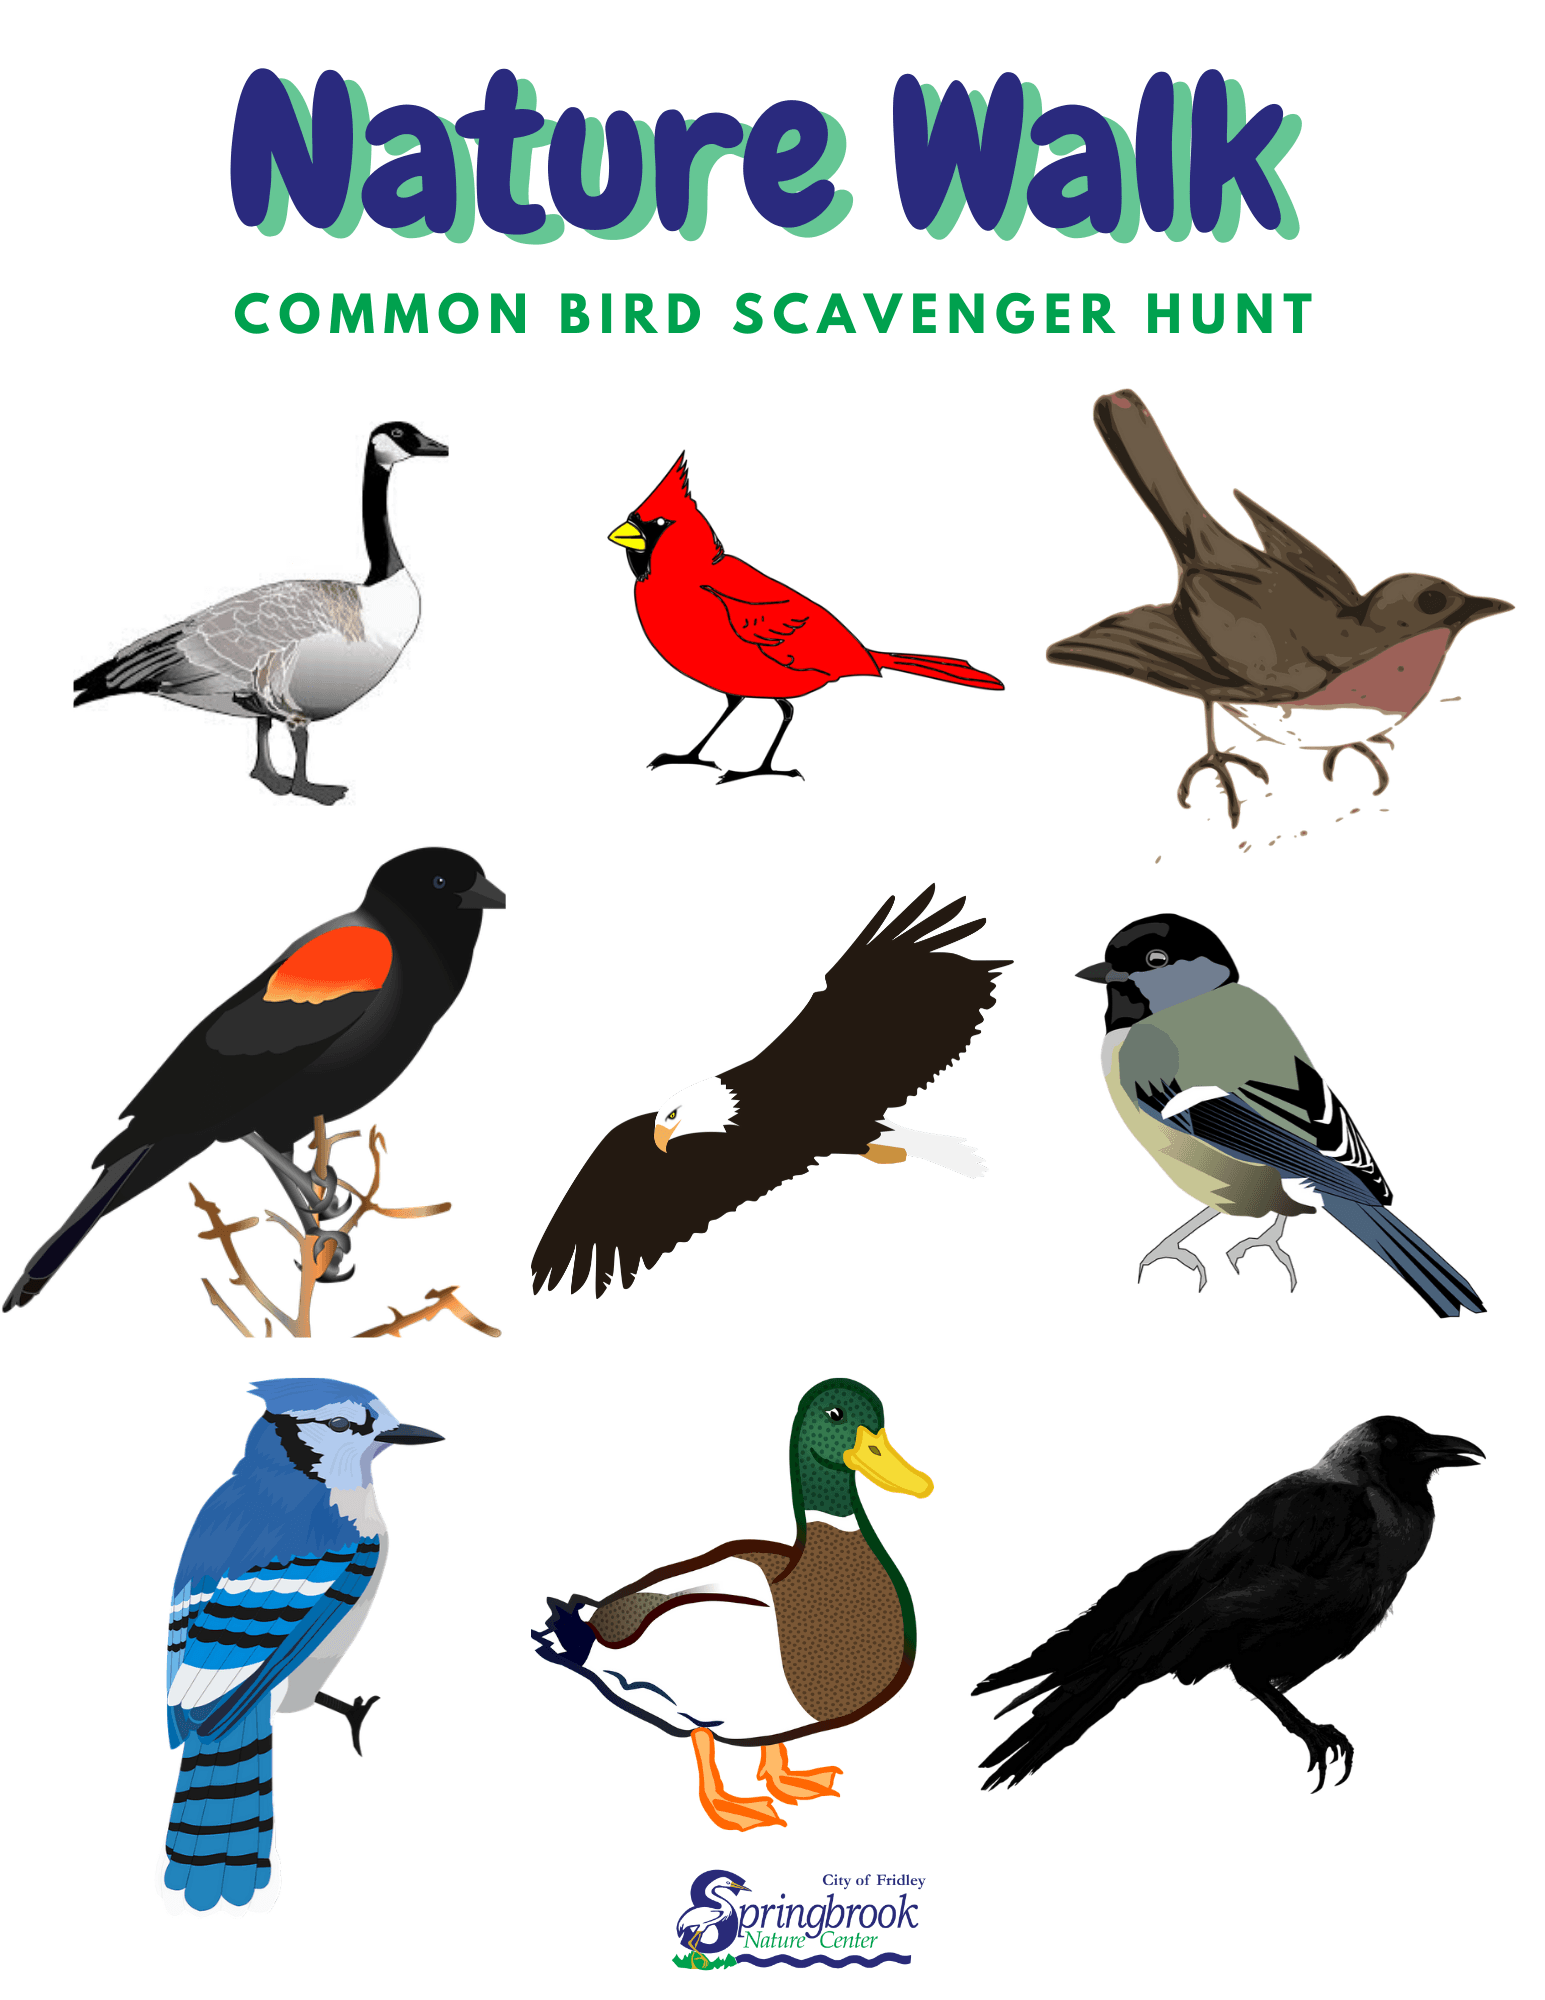 Bird Scavenger Hunt Opens in new window